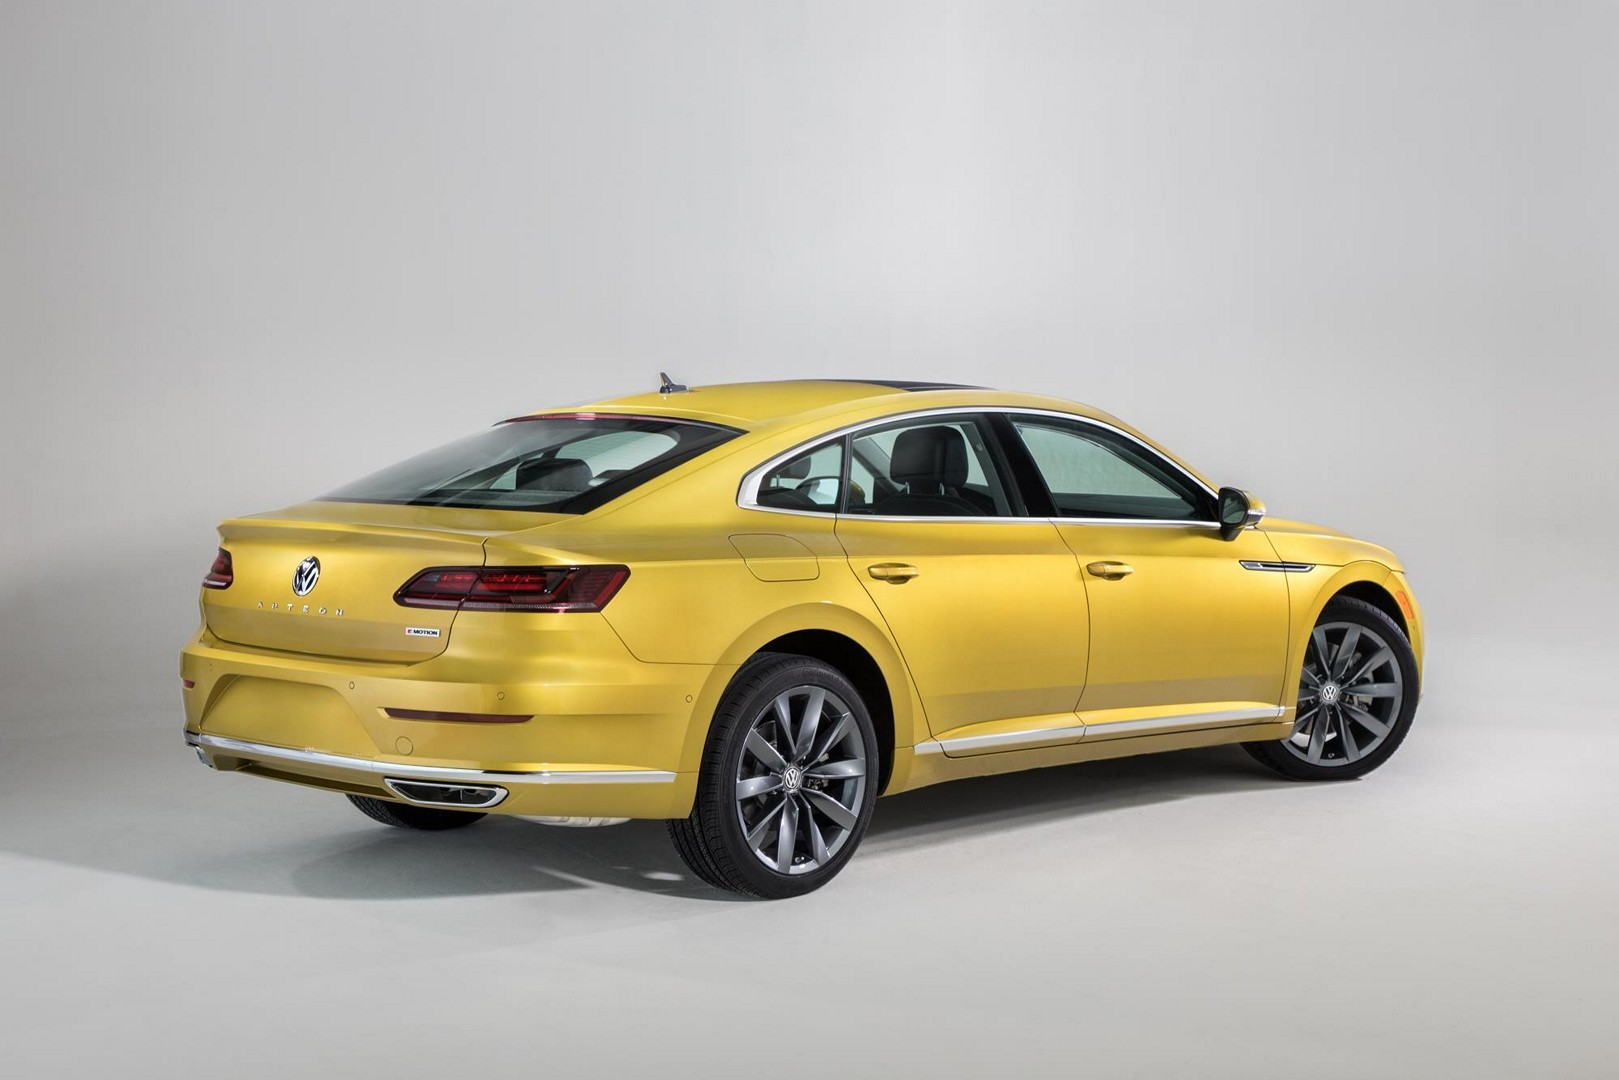 2018 Gti Release >> 2019 VW Arteon Flagship Sedan Launched in Chicago - autoevolution